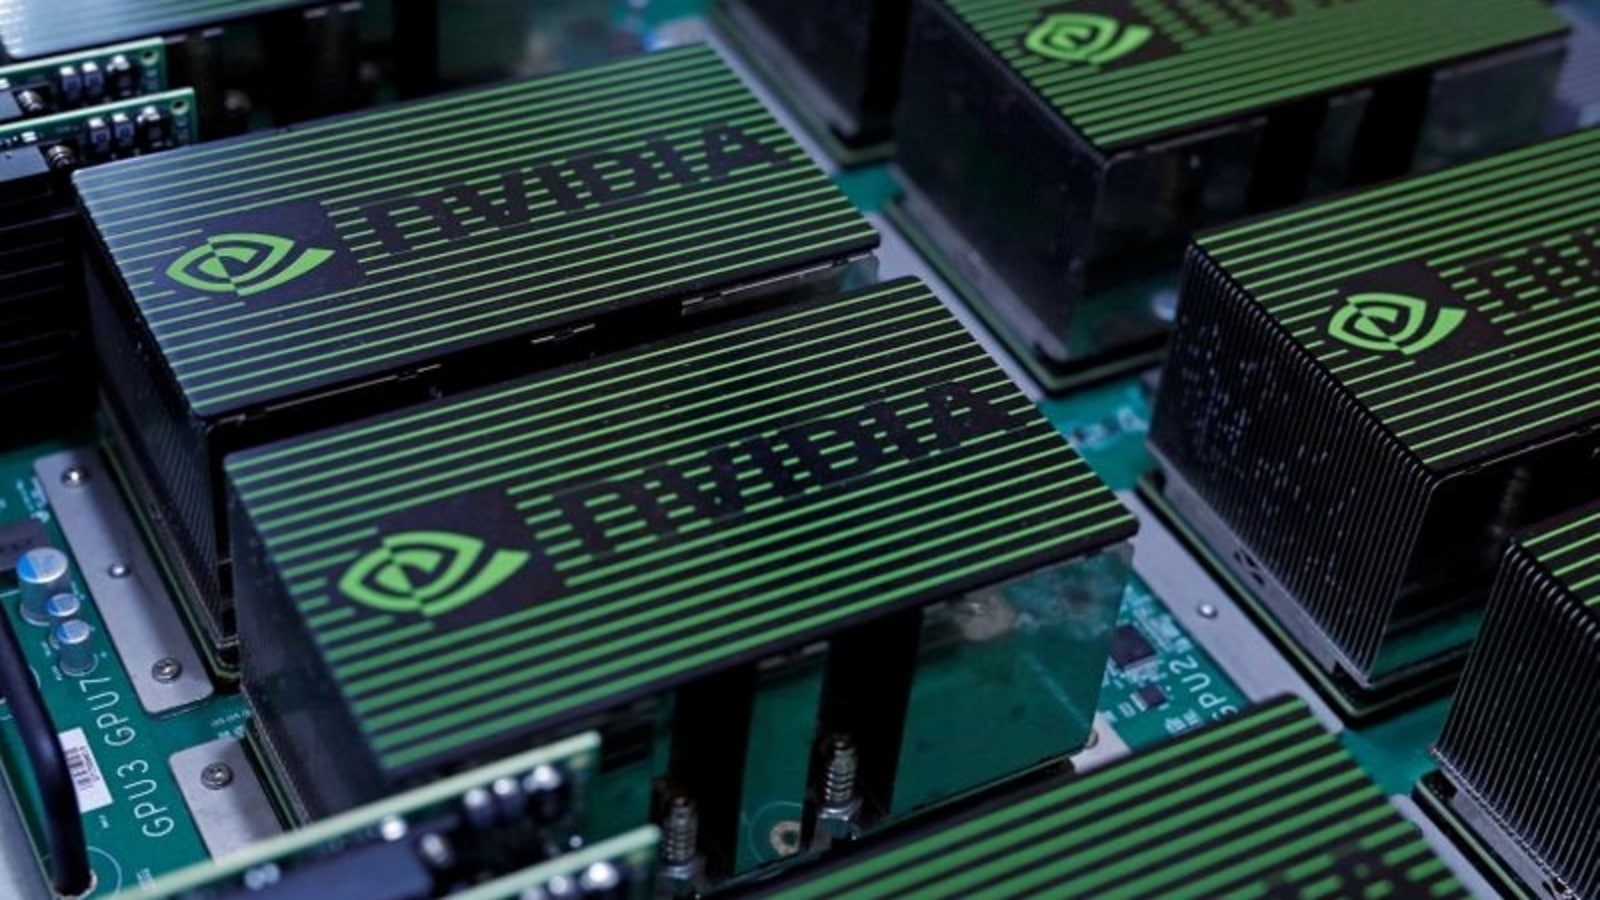 Nvidia gives strong forecast driven by gamer, data center demand